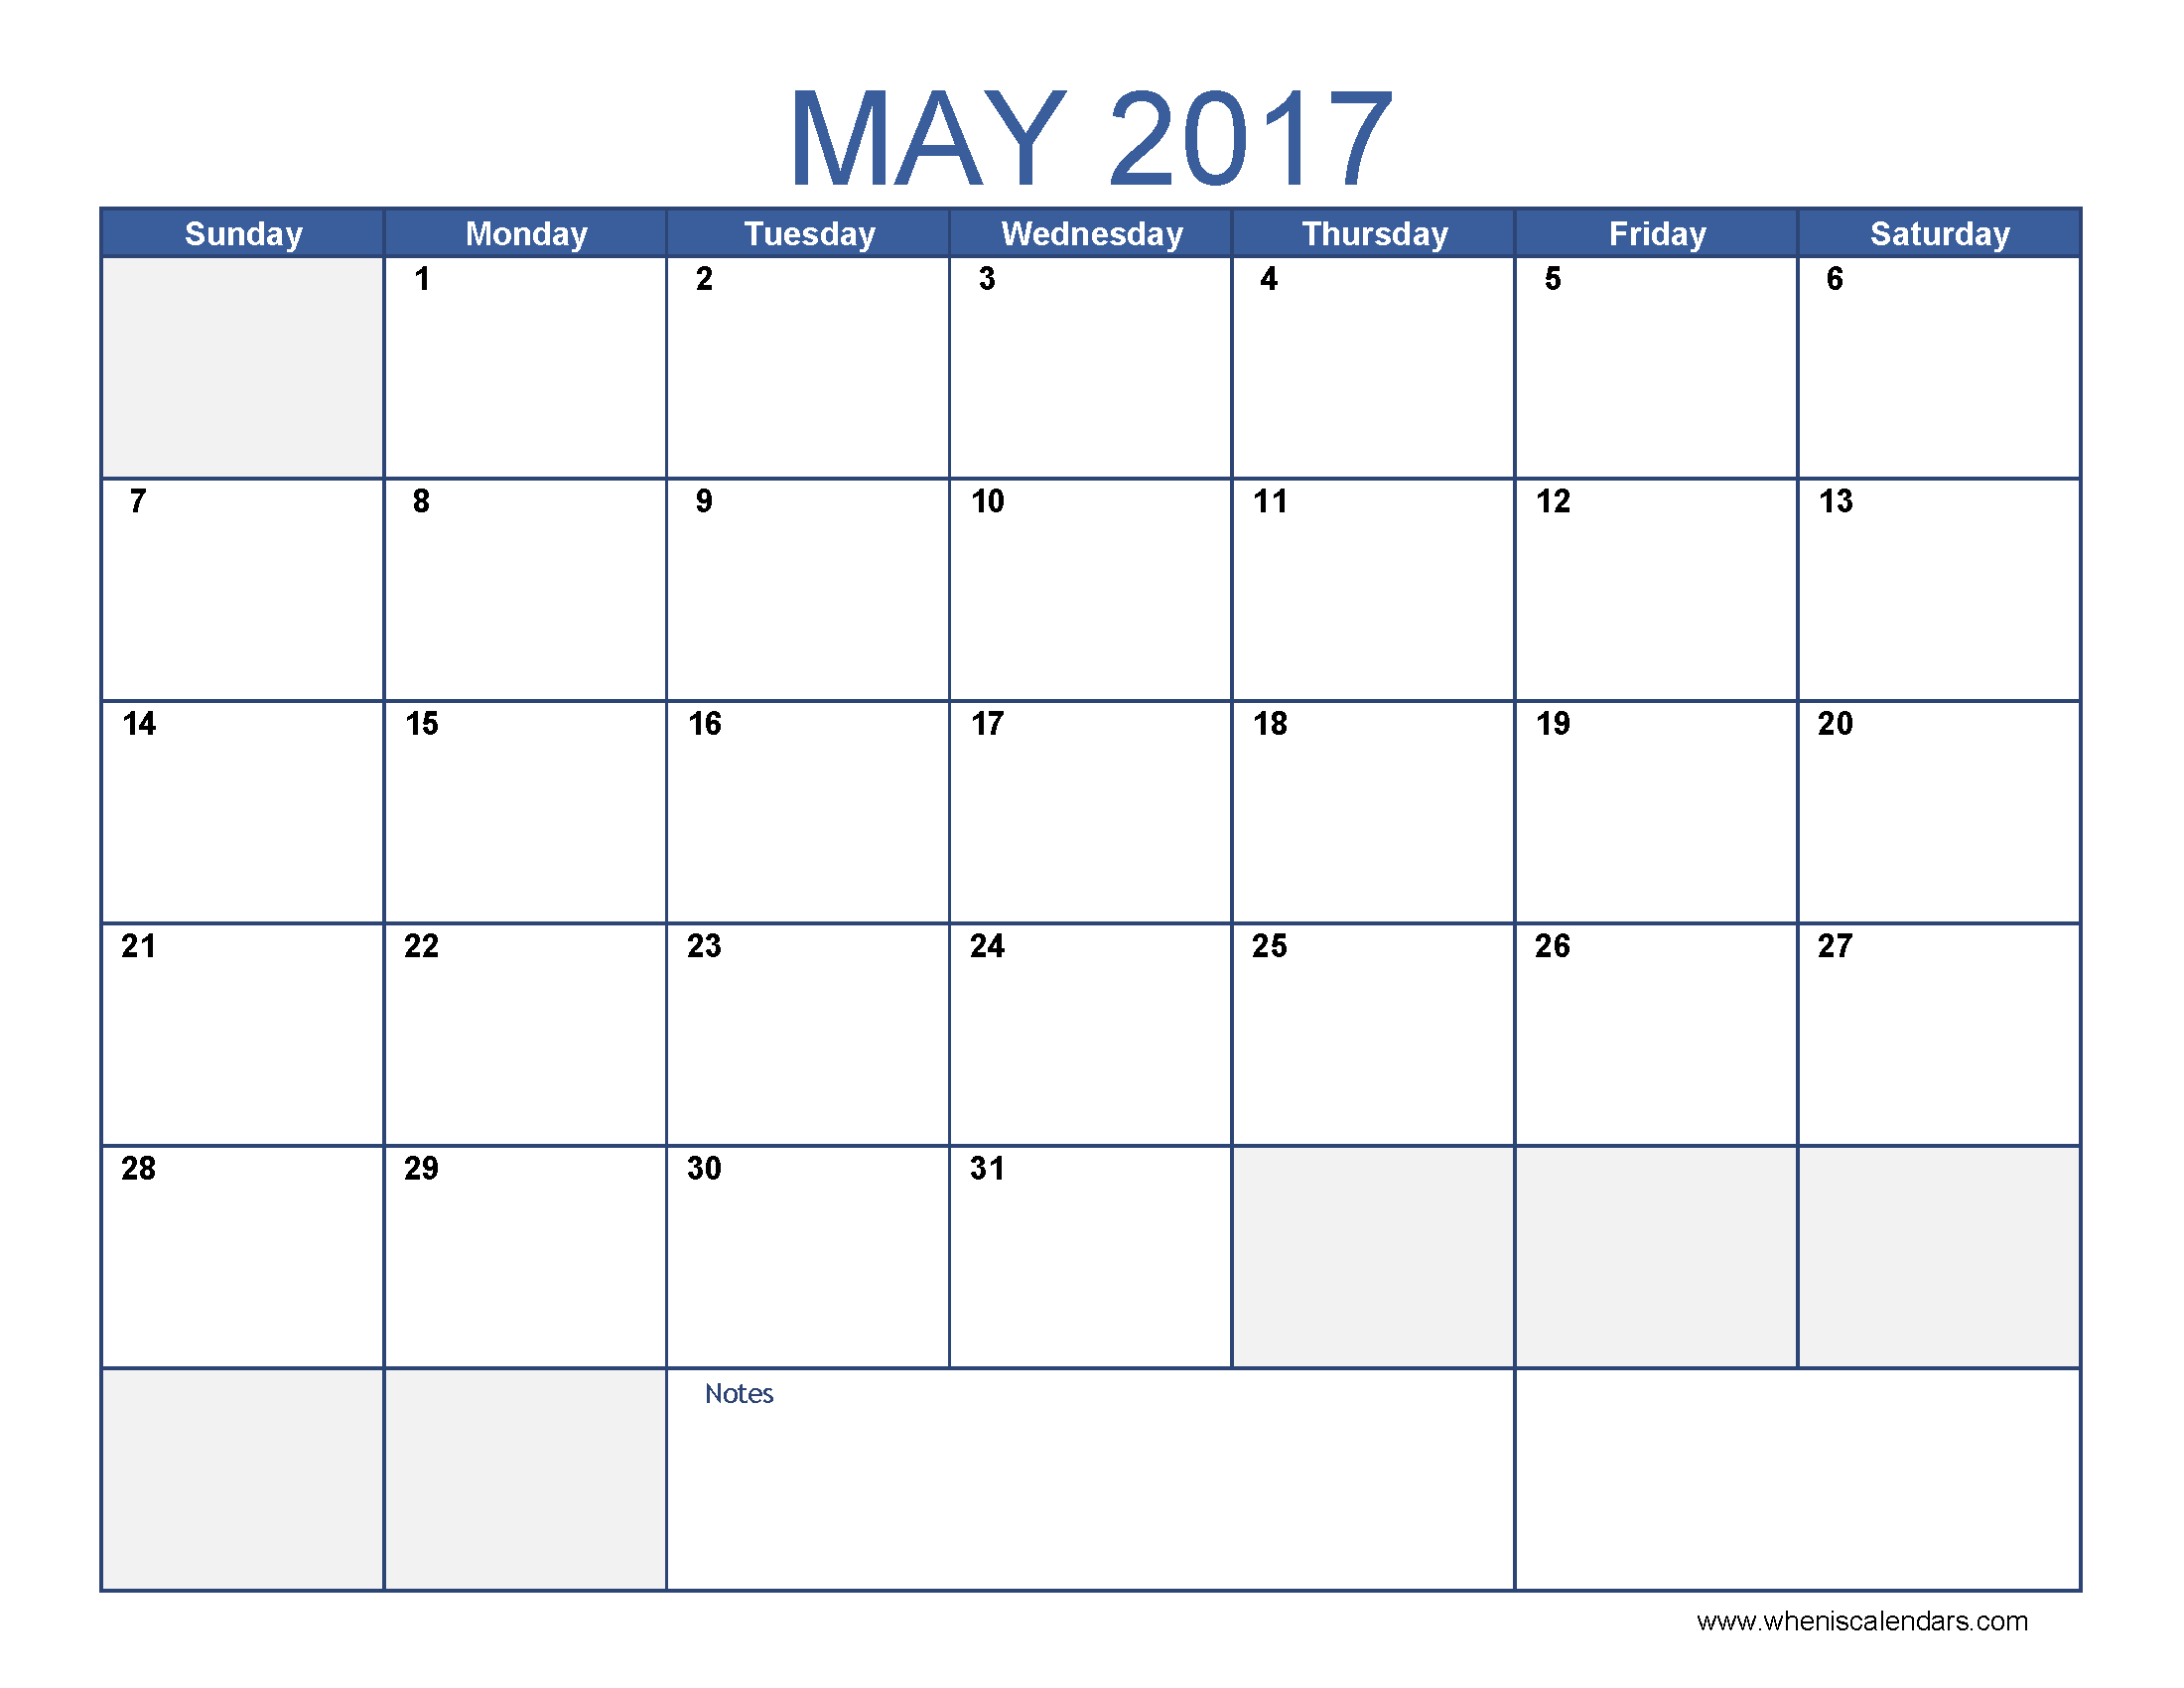 May 2017 Calendar With Jewish Holidays 4 - Free Printable